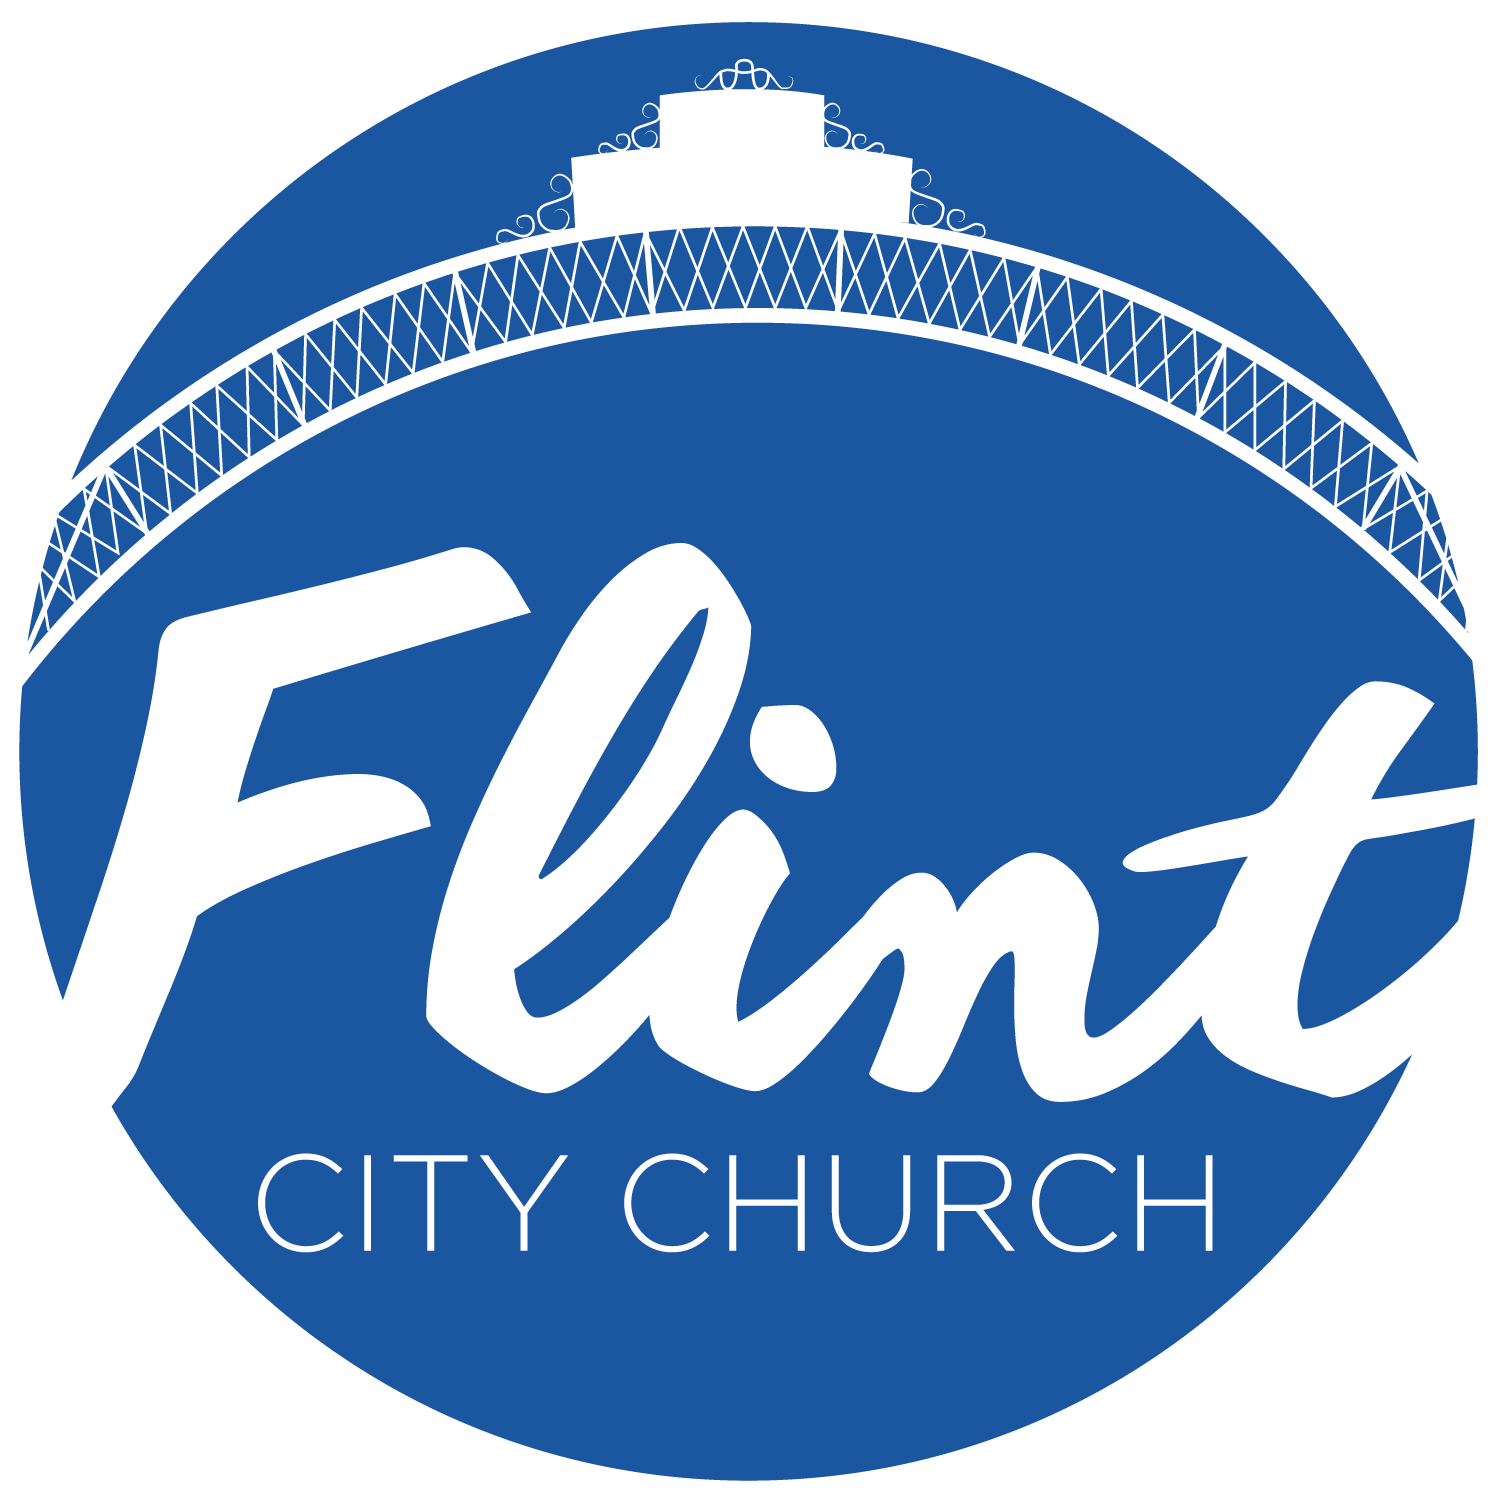 Flint City Church